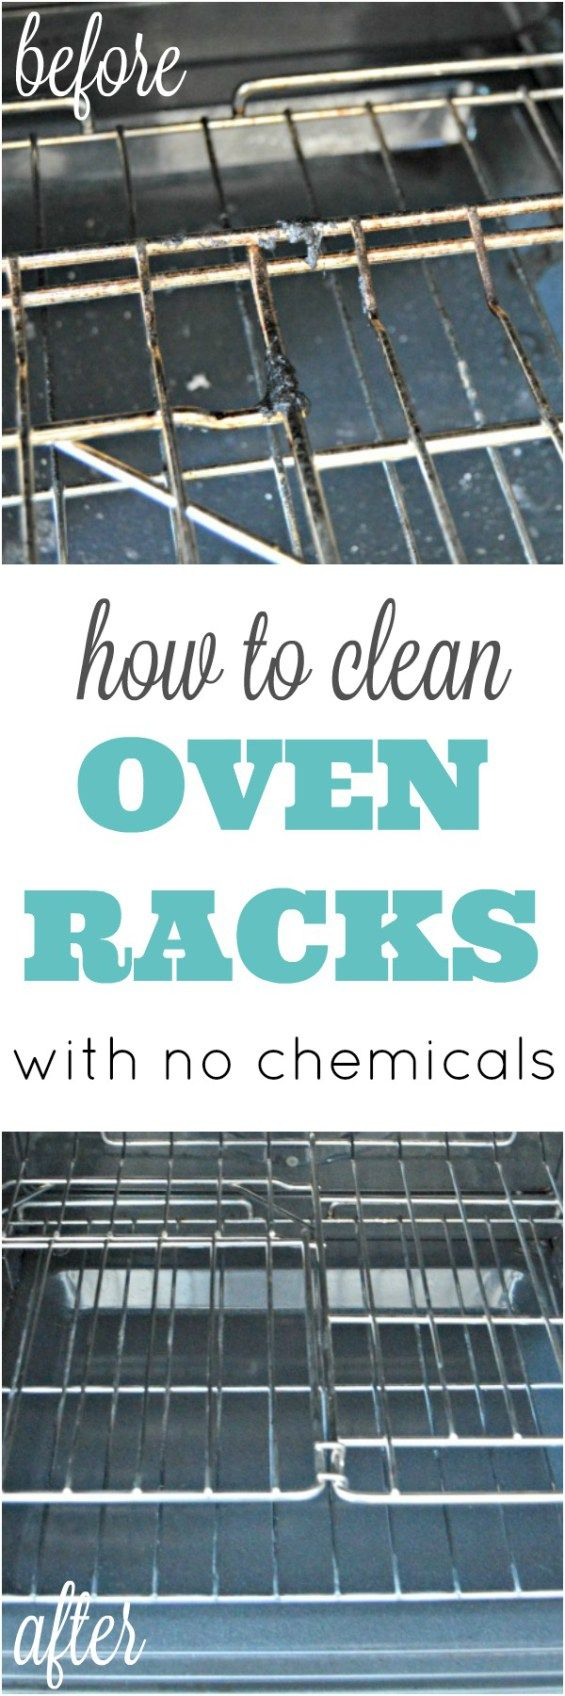 8 best Clever Cleaning Tips images on Pinterest | Cleaning, Cleaning ...